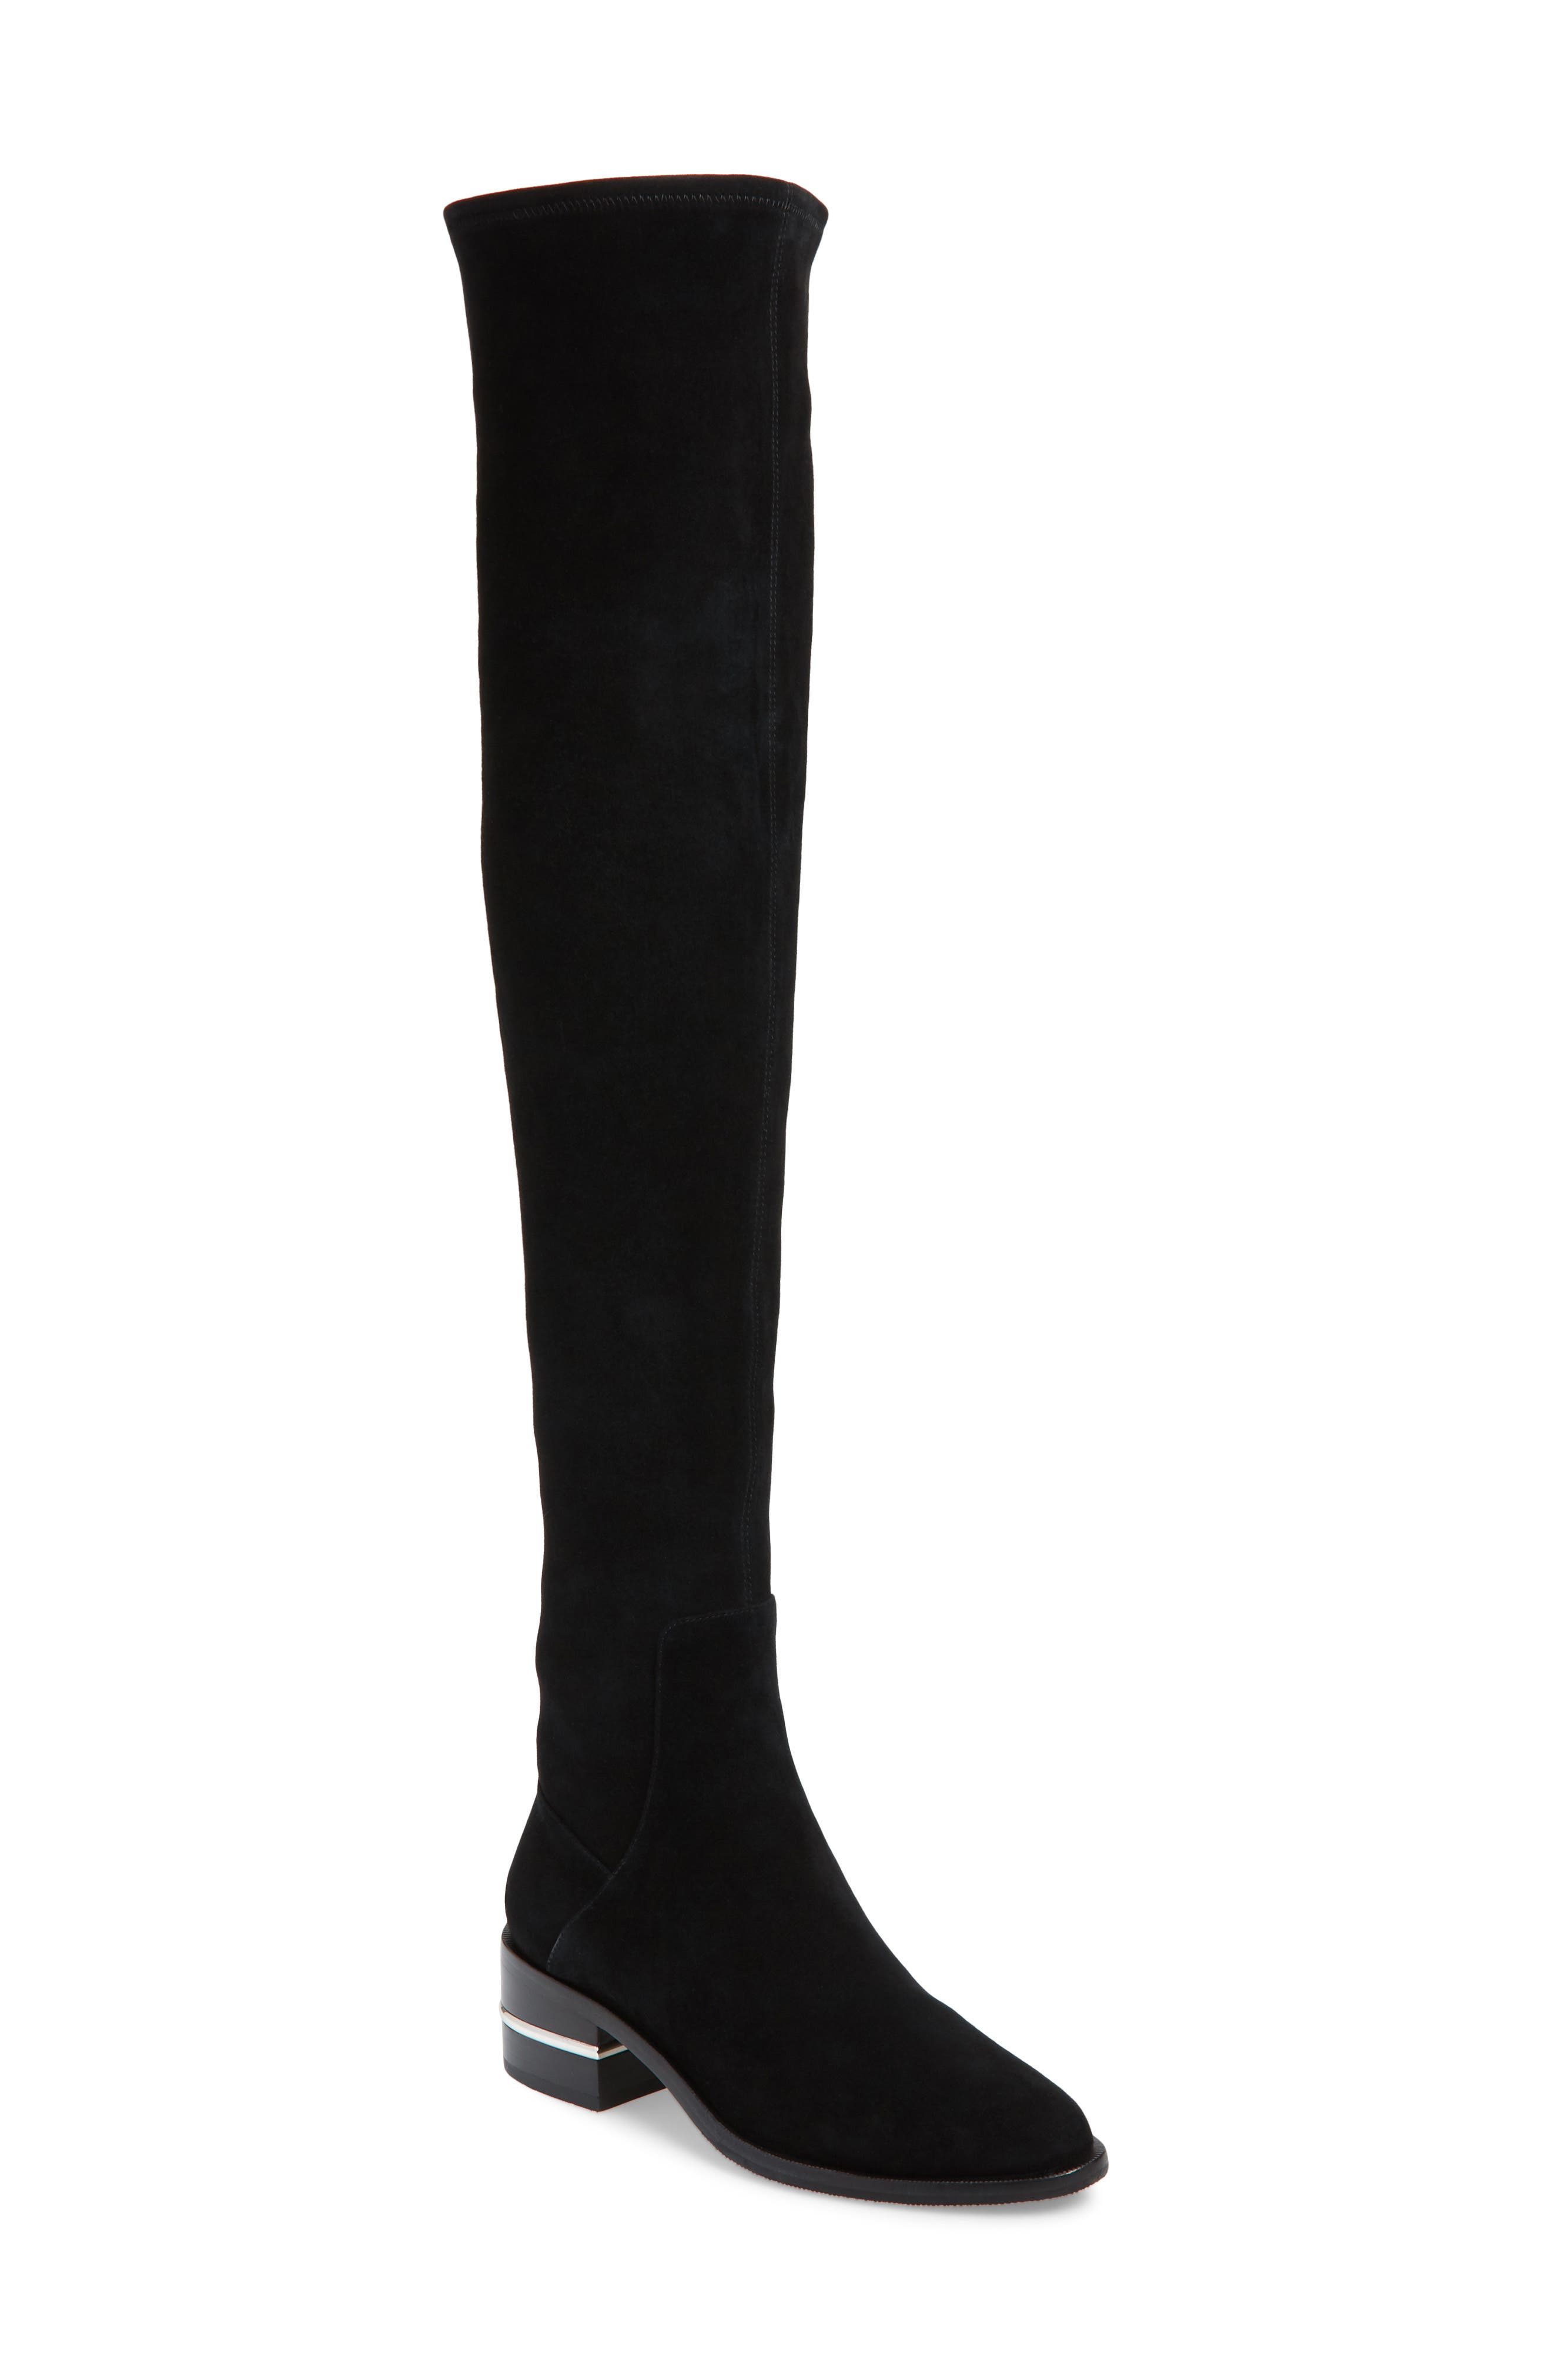 PAIGE Jacey Over the Knee Stretch Boot (Women)